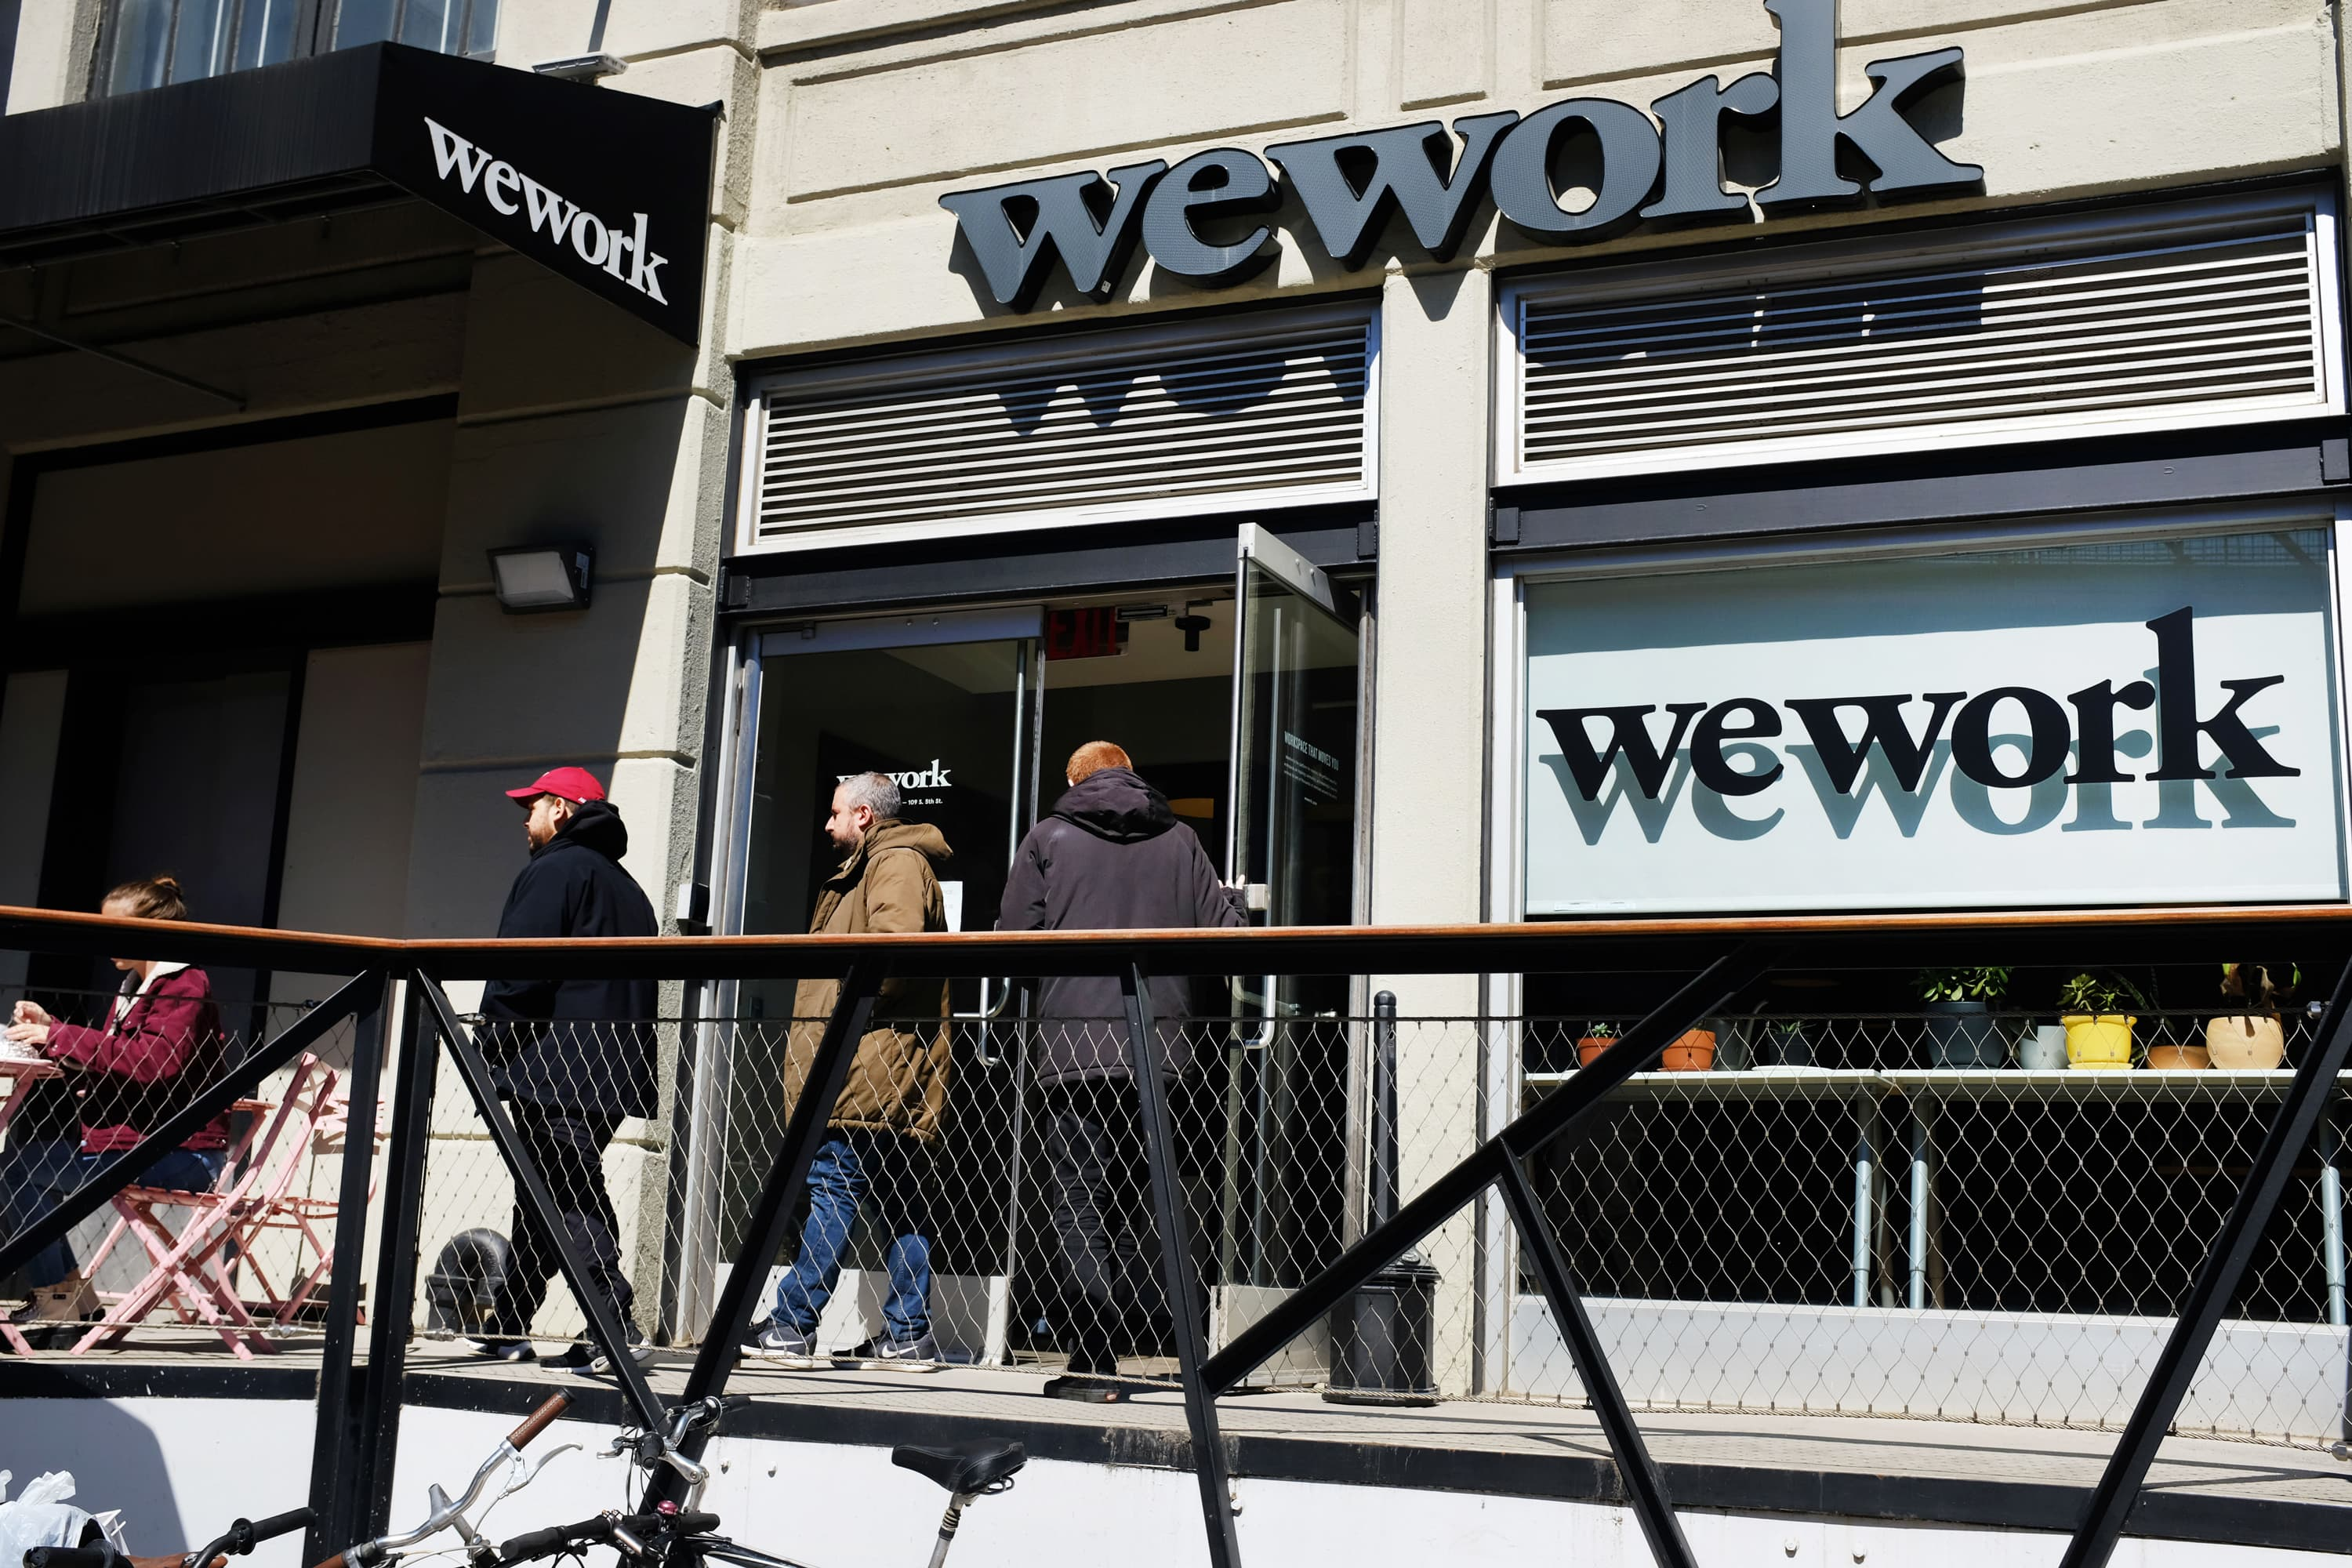 WeWork accounted for 69% of coworking space leases in third quarter, even as crisis loomed